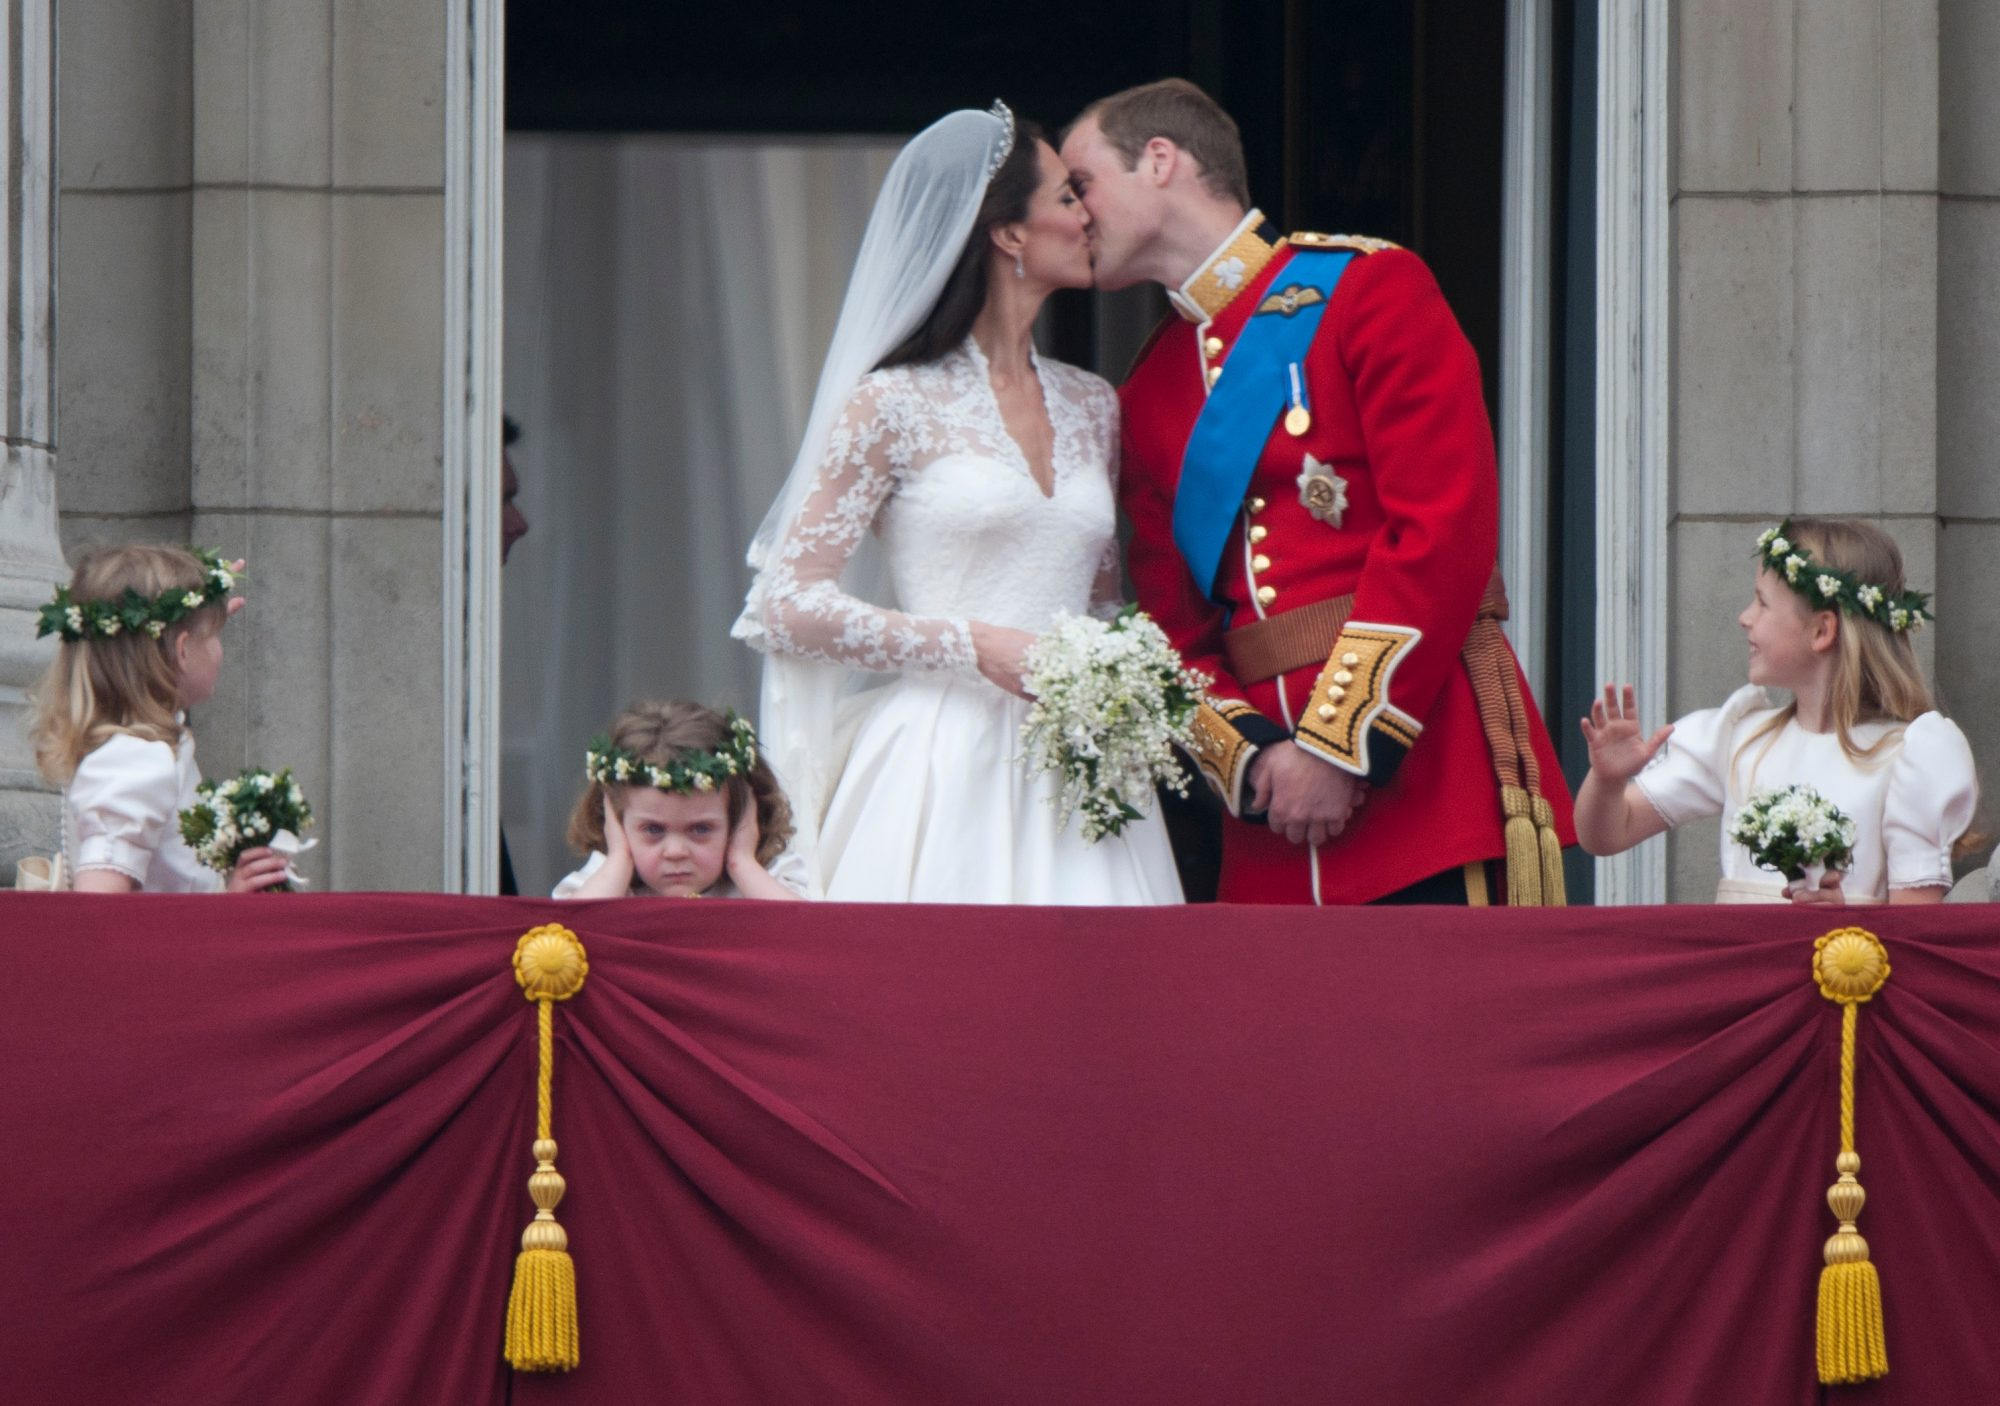 Royal Wedding Kiss.Royal Wedding Balcony Kiss Tradition Southern Living